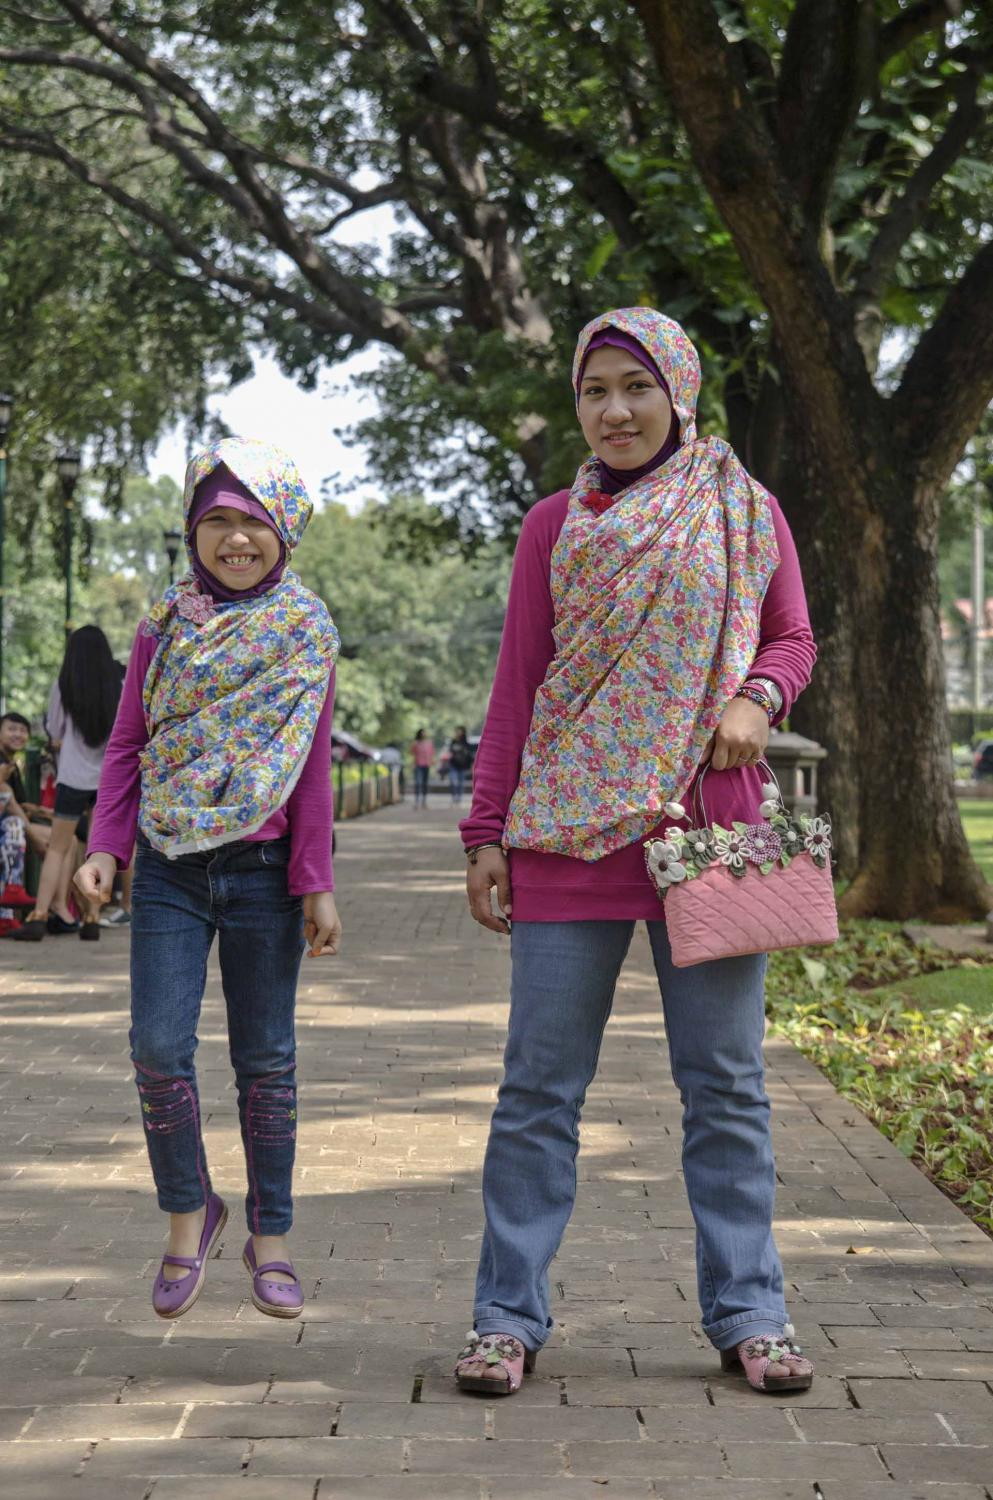 Meisra Adni, 32 years old and her 7 years old daughter Qisthi Khaera Dayyana, take a walk in a park in Jakarta, Indonesia, Sunday (3/2/2013). [Photo : Eka Nickmatulhuda]